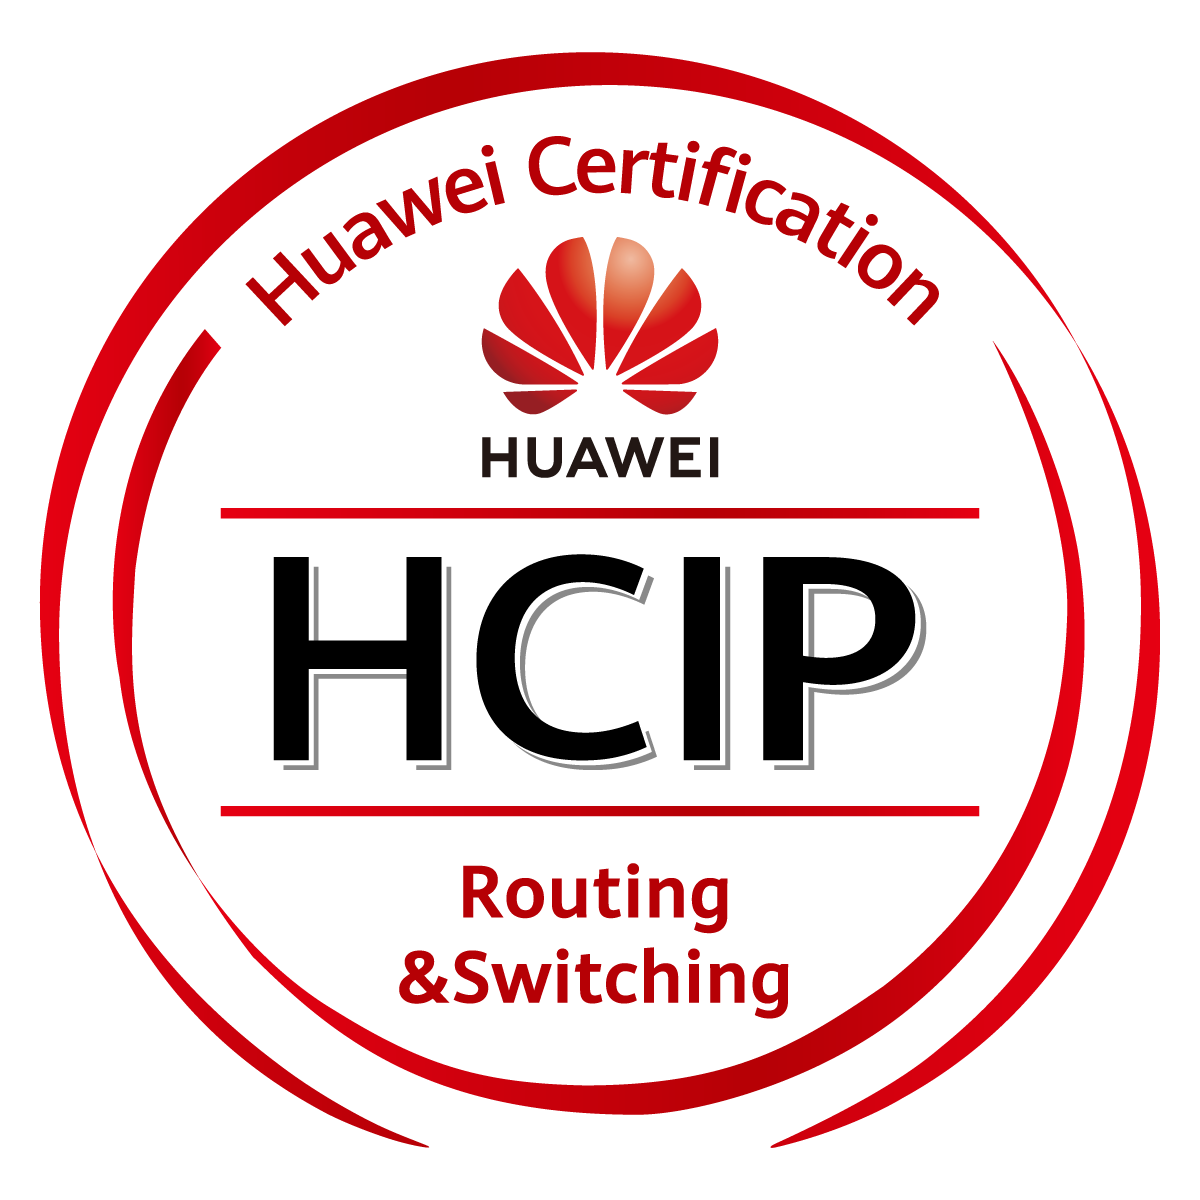 HCIP-Routing & Switching_V2.5_培训教材-59学习网